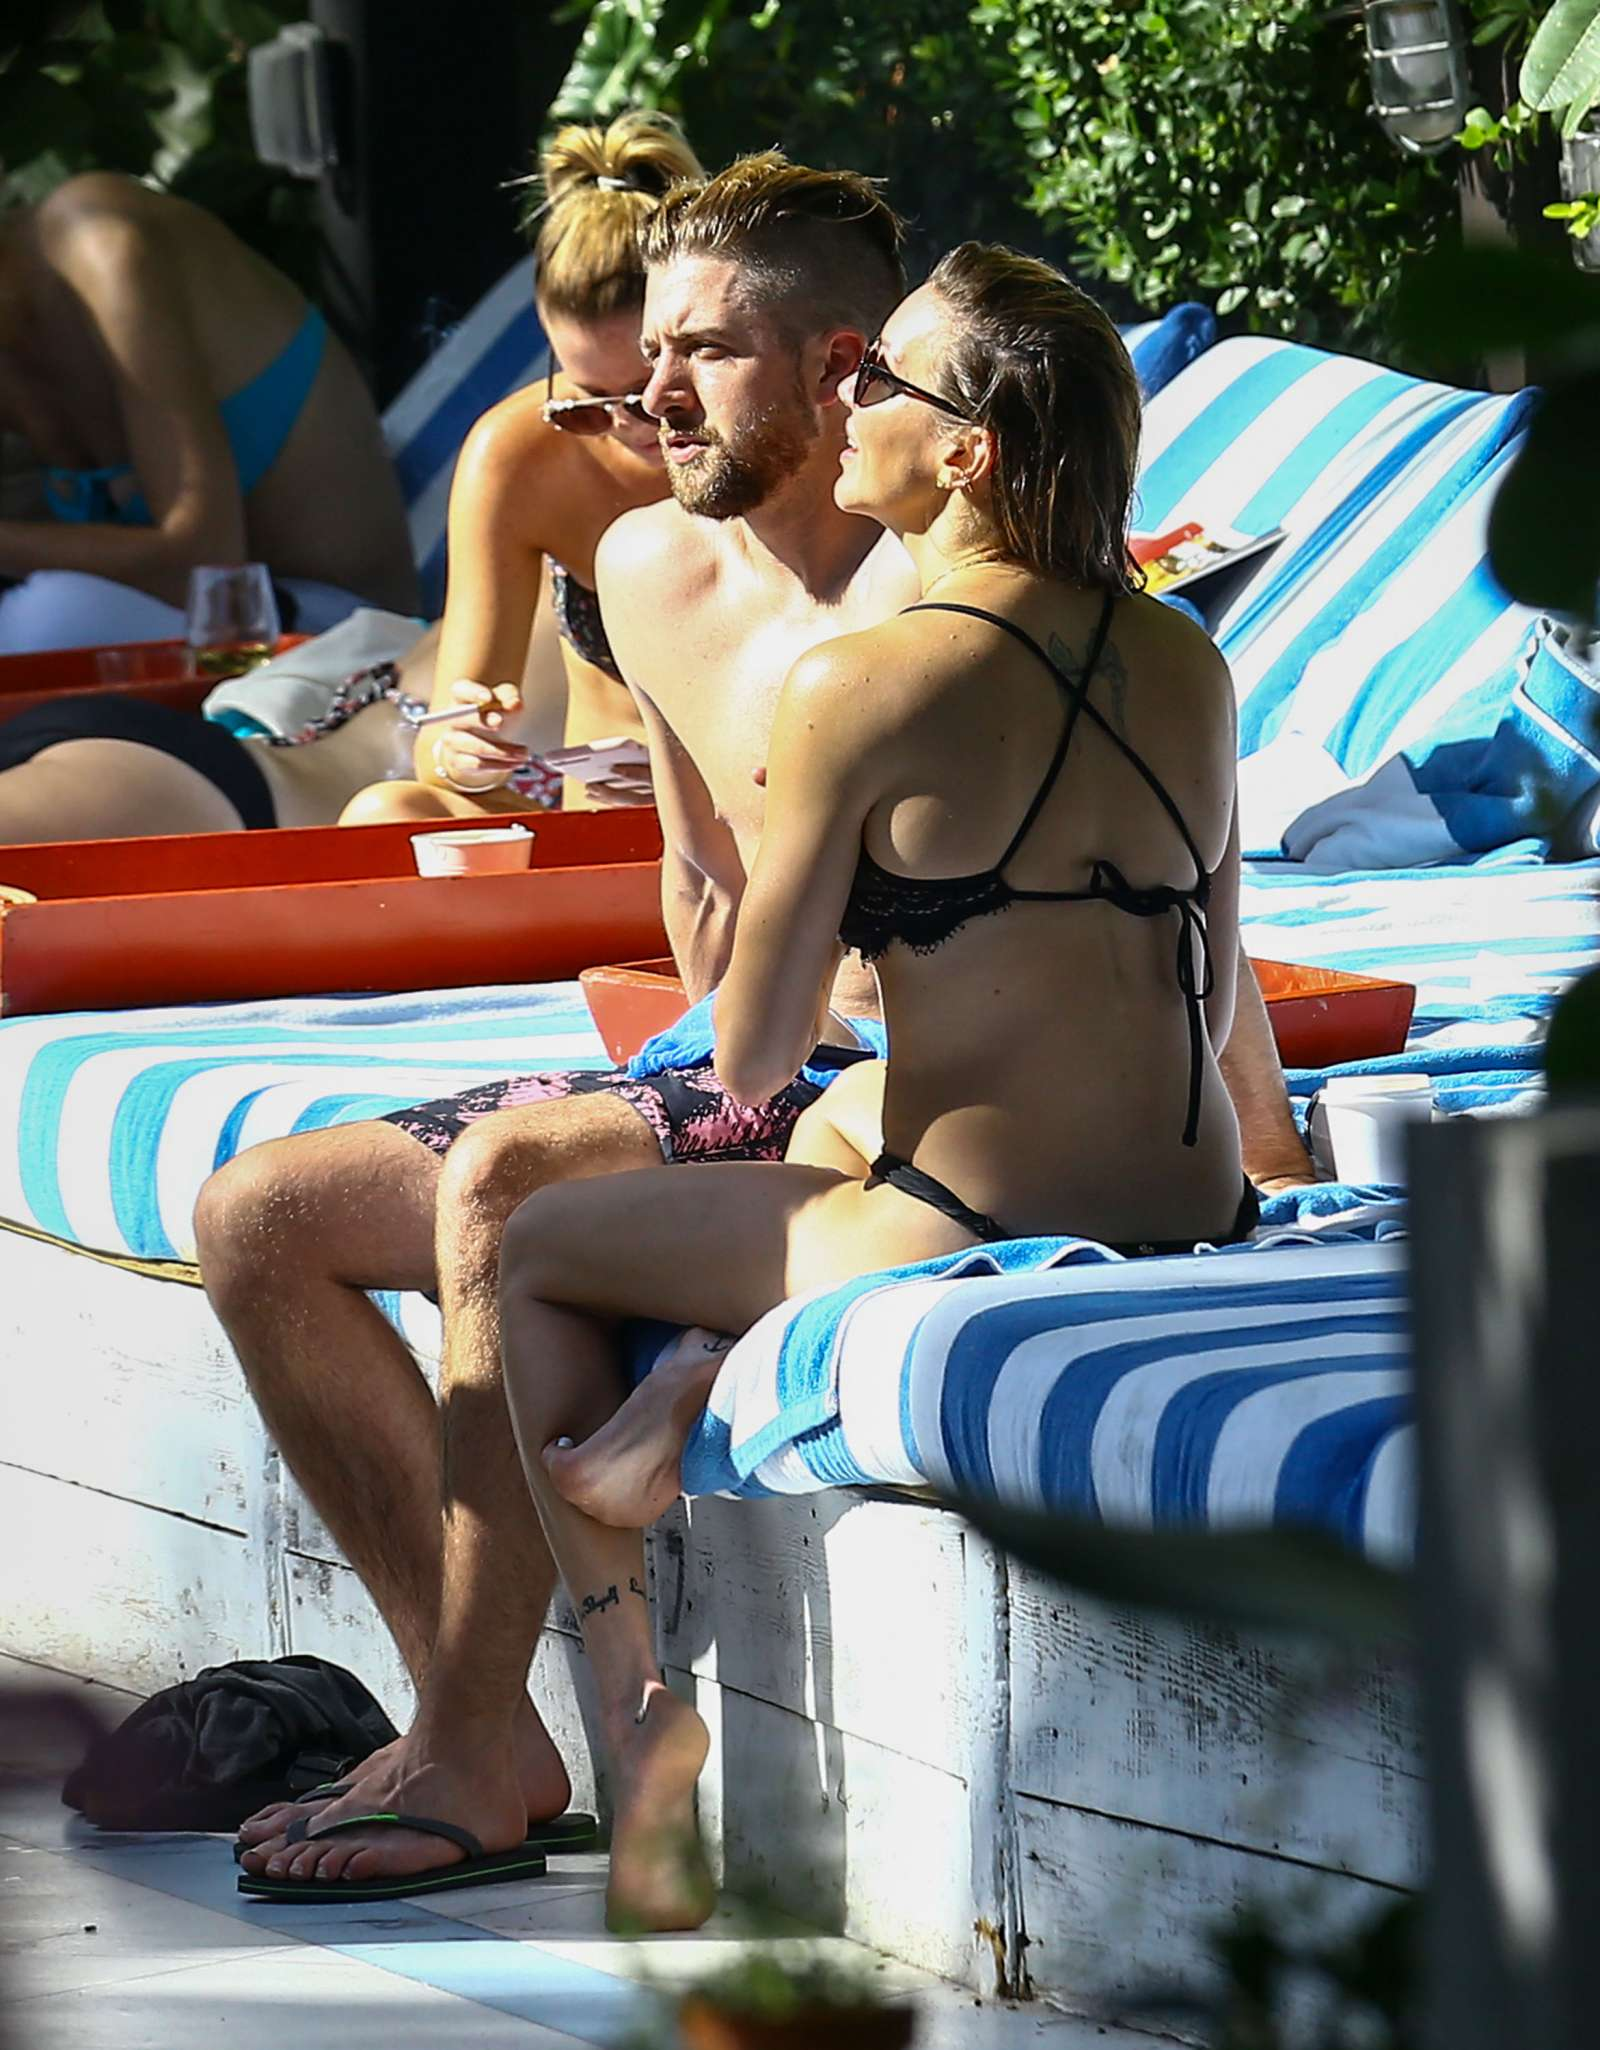 Katie Cassidy in Black Bikini at the pool in Miami   Katie-Cassidy-in-Black-Bikini-2016--03